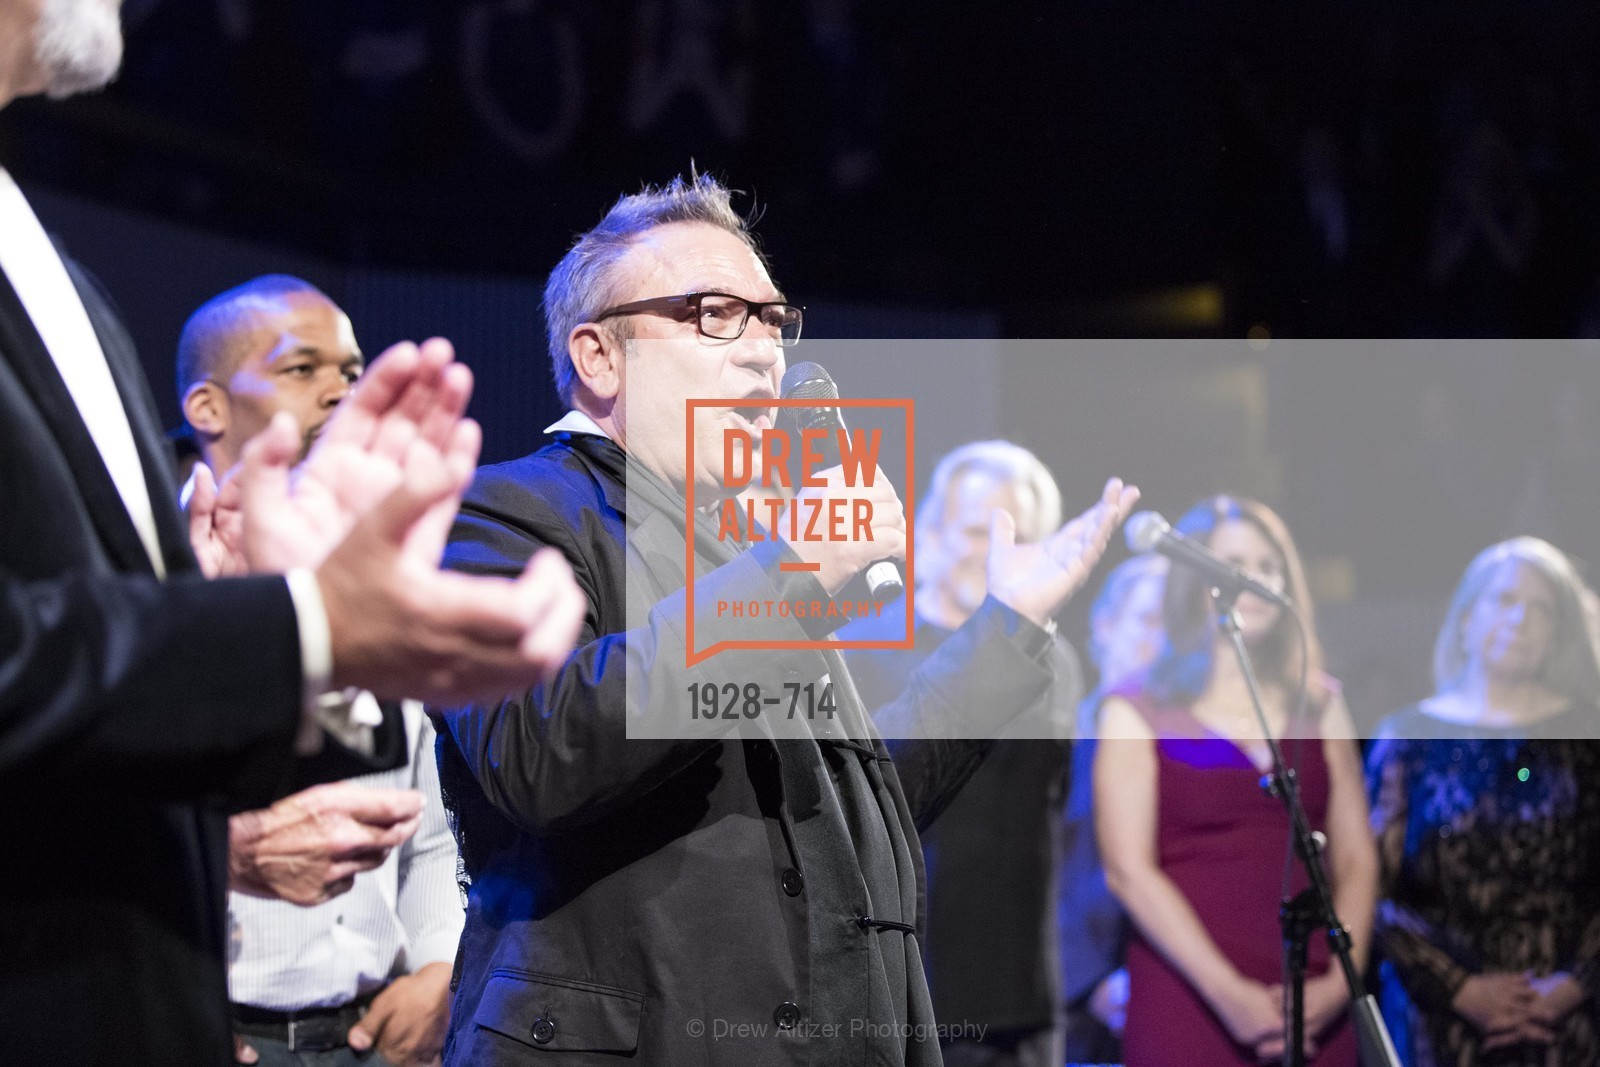 Stanlee Gatti, SFJAZZ Gala 2015 Honors Joni Mitchell with Lifetime Achievement Award, US, May 9th, 2015,Drew Altizer, Drew Altizer Photography, full-service agency, private events, San Francisco photographer, photographer california